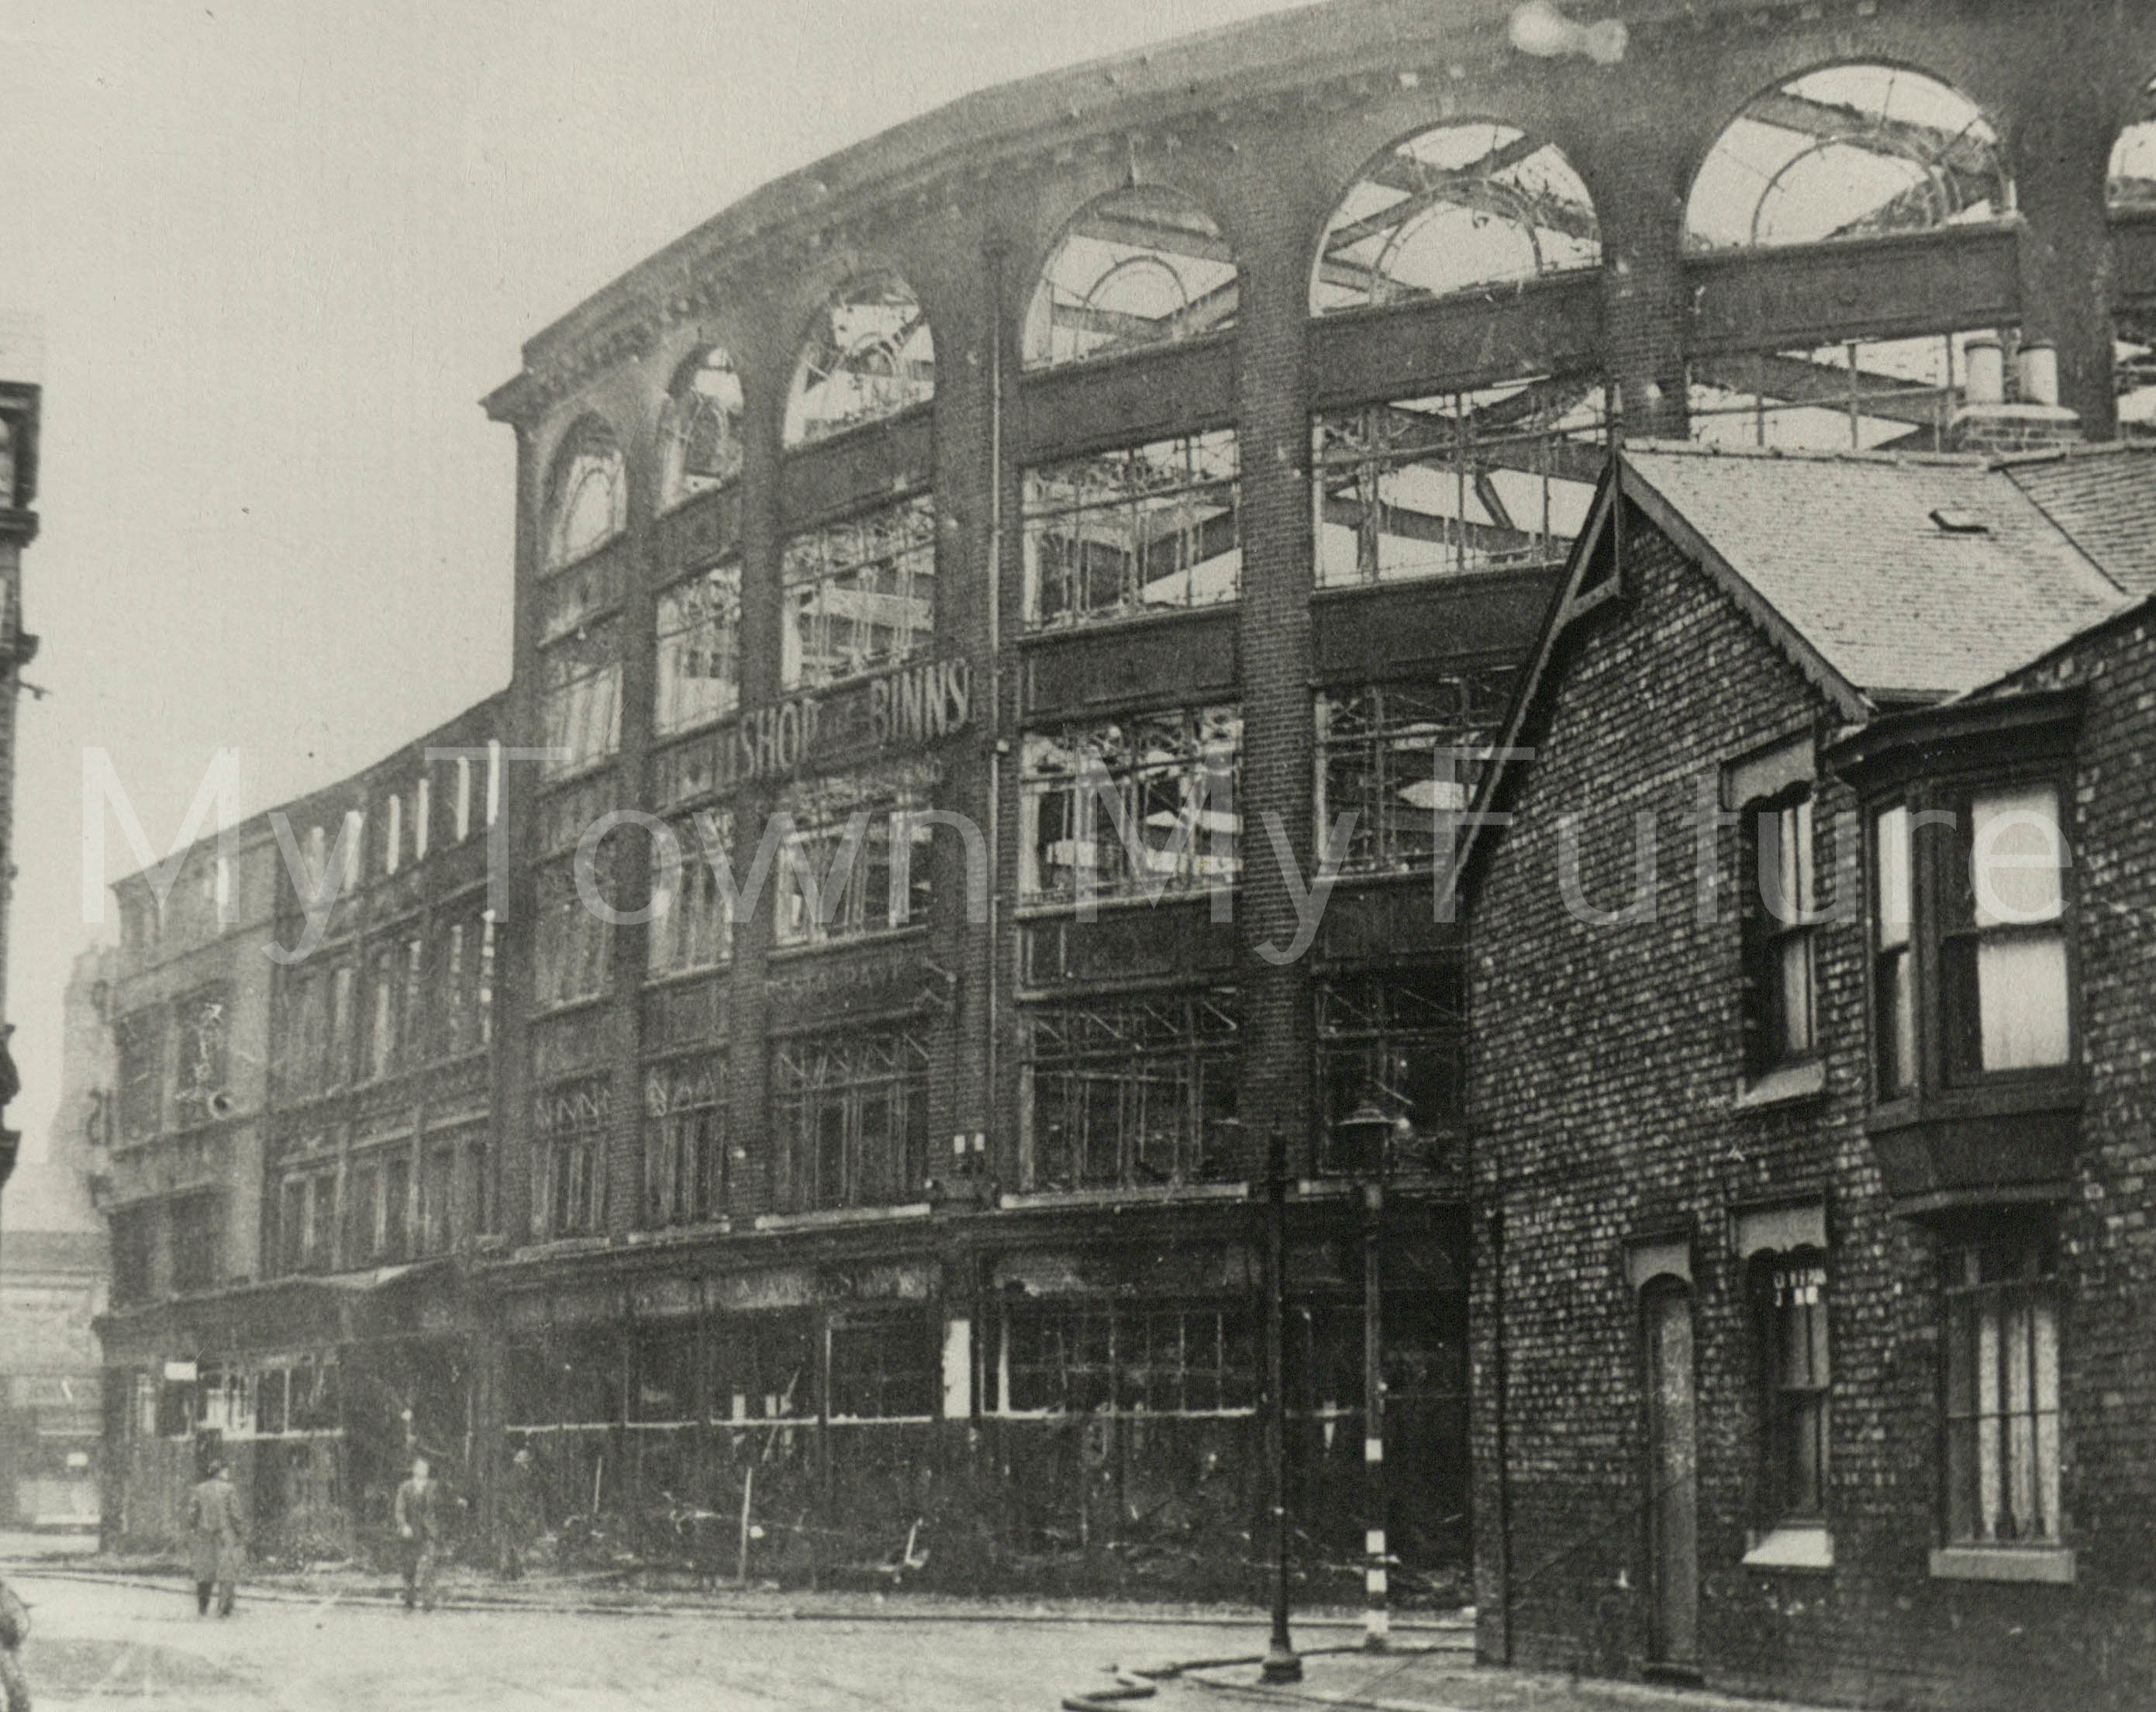 Newport Road Fire damage to Binn Store caused by arson c1941